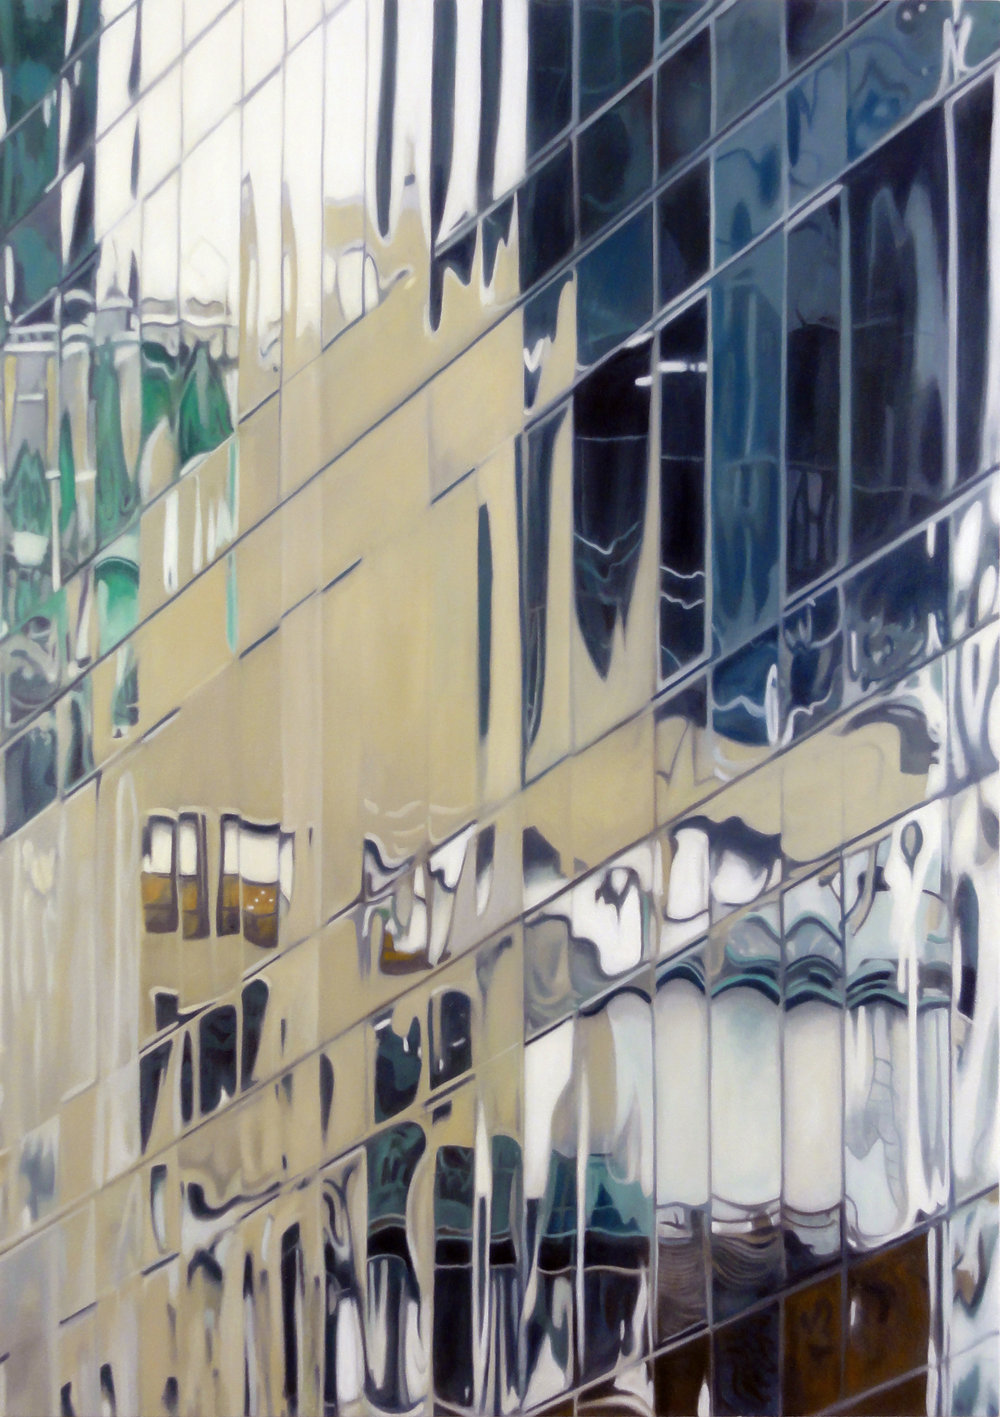 57TH STREET OIL ON CANVAS 48X34 IN